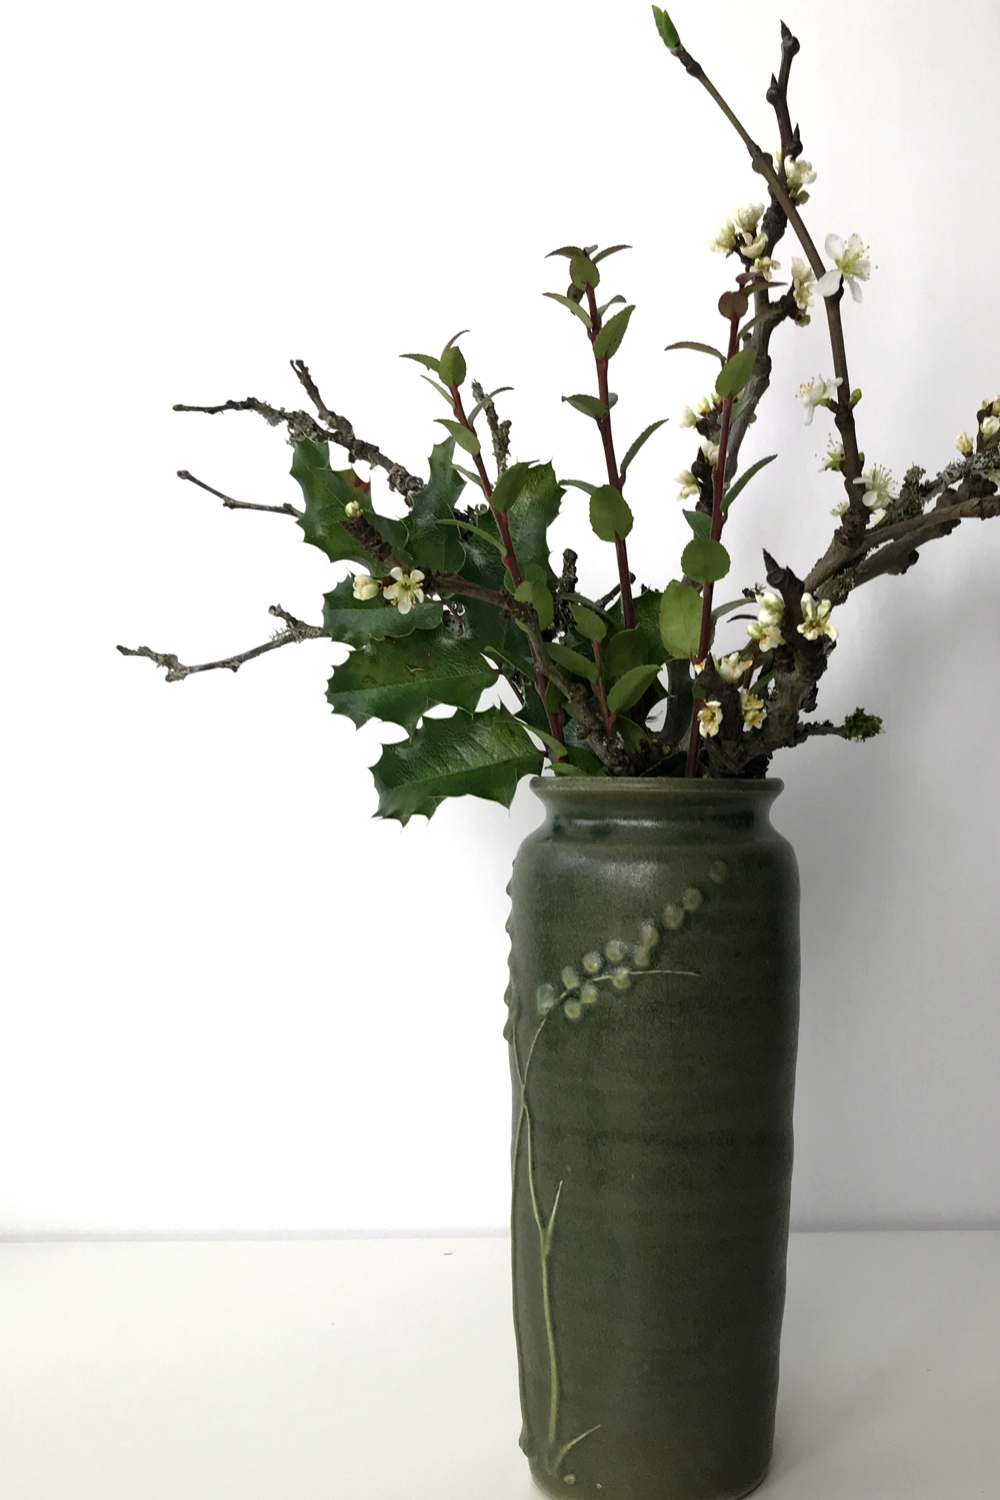 A small winter arrangement of plum branches in bloom with mahonia and huckleberry leaves in a green ceramic vase.